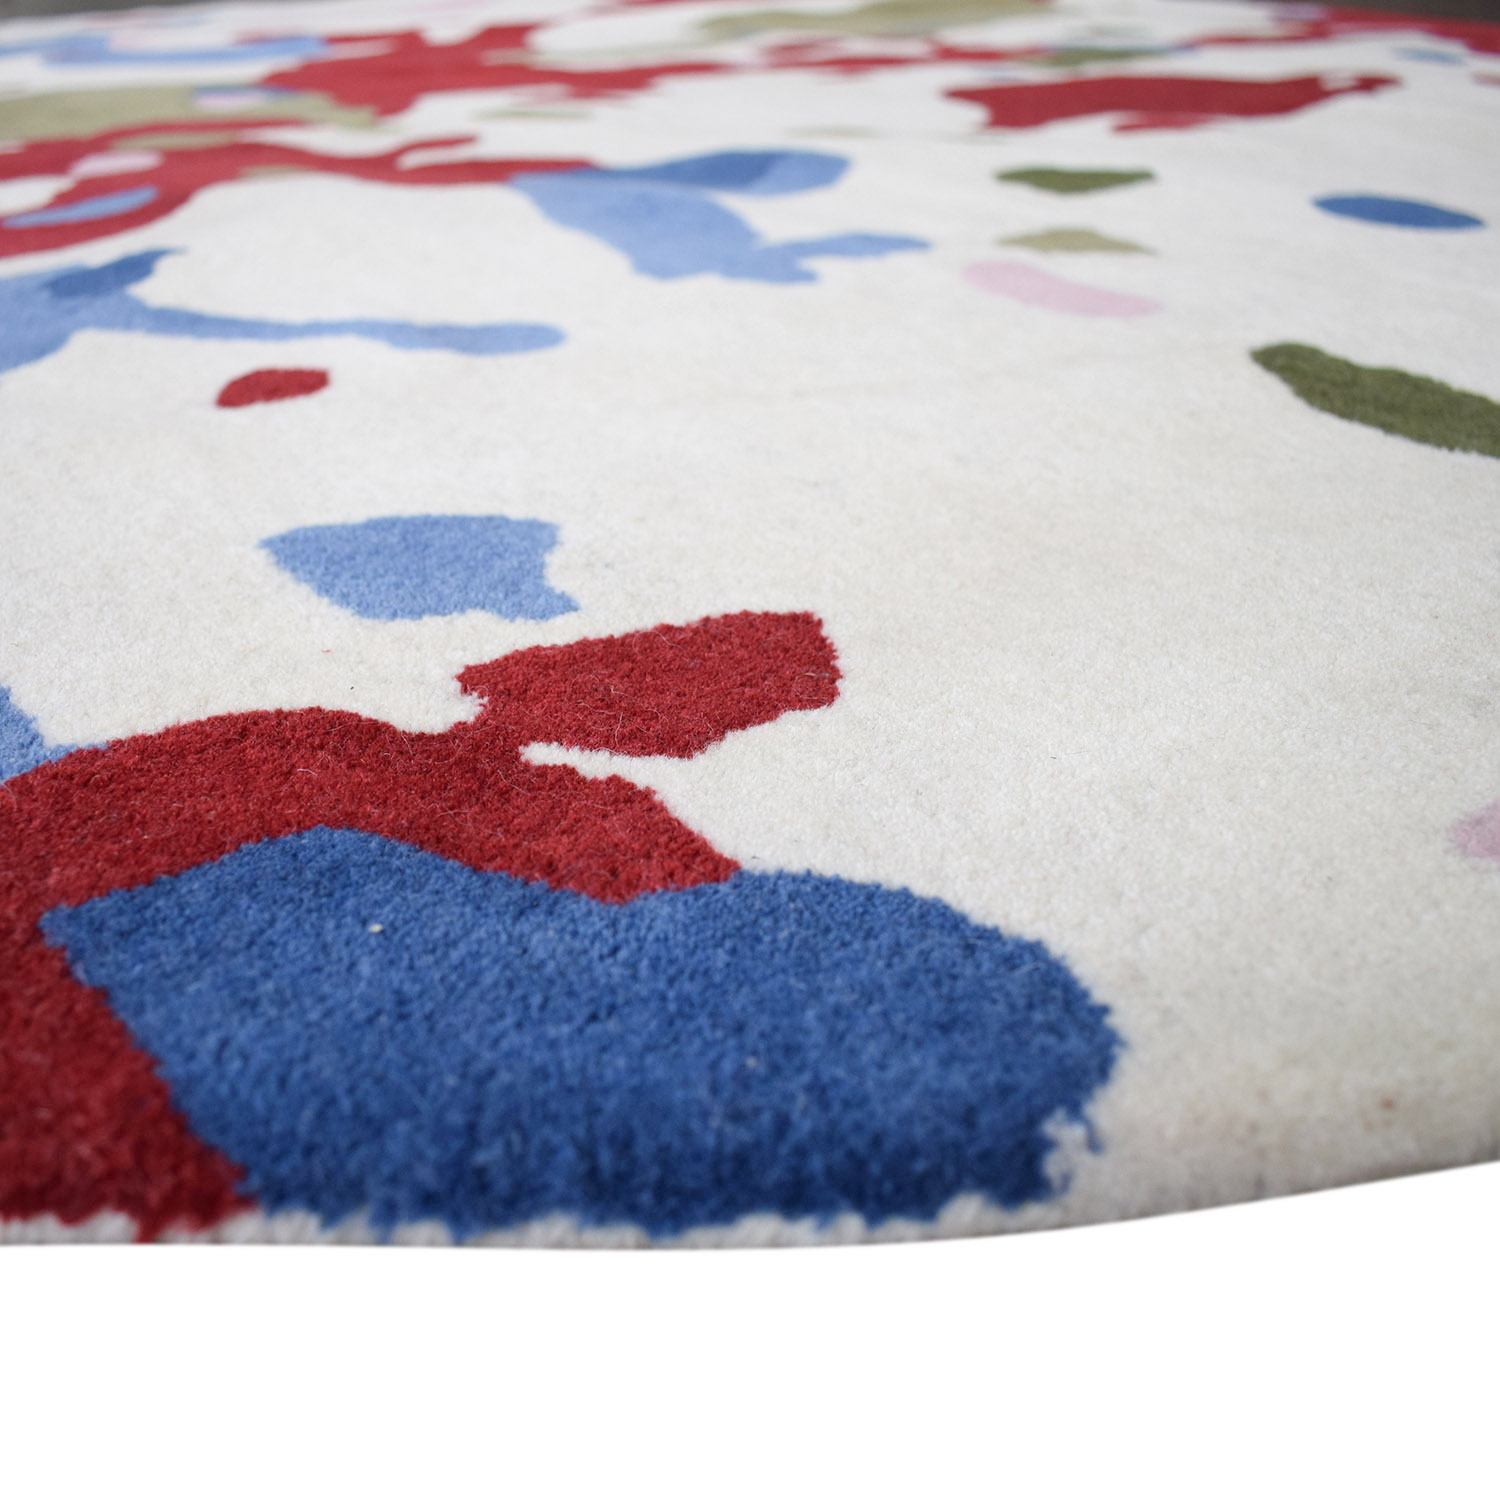 Obeetee Obeetee Round Multi-Colored Handtufted Rug dimensions